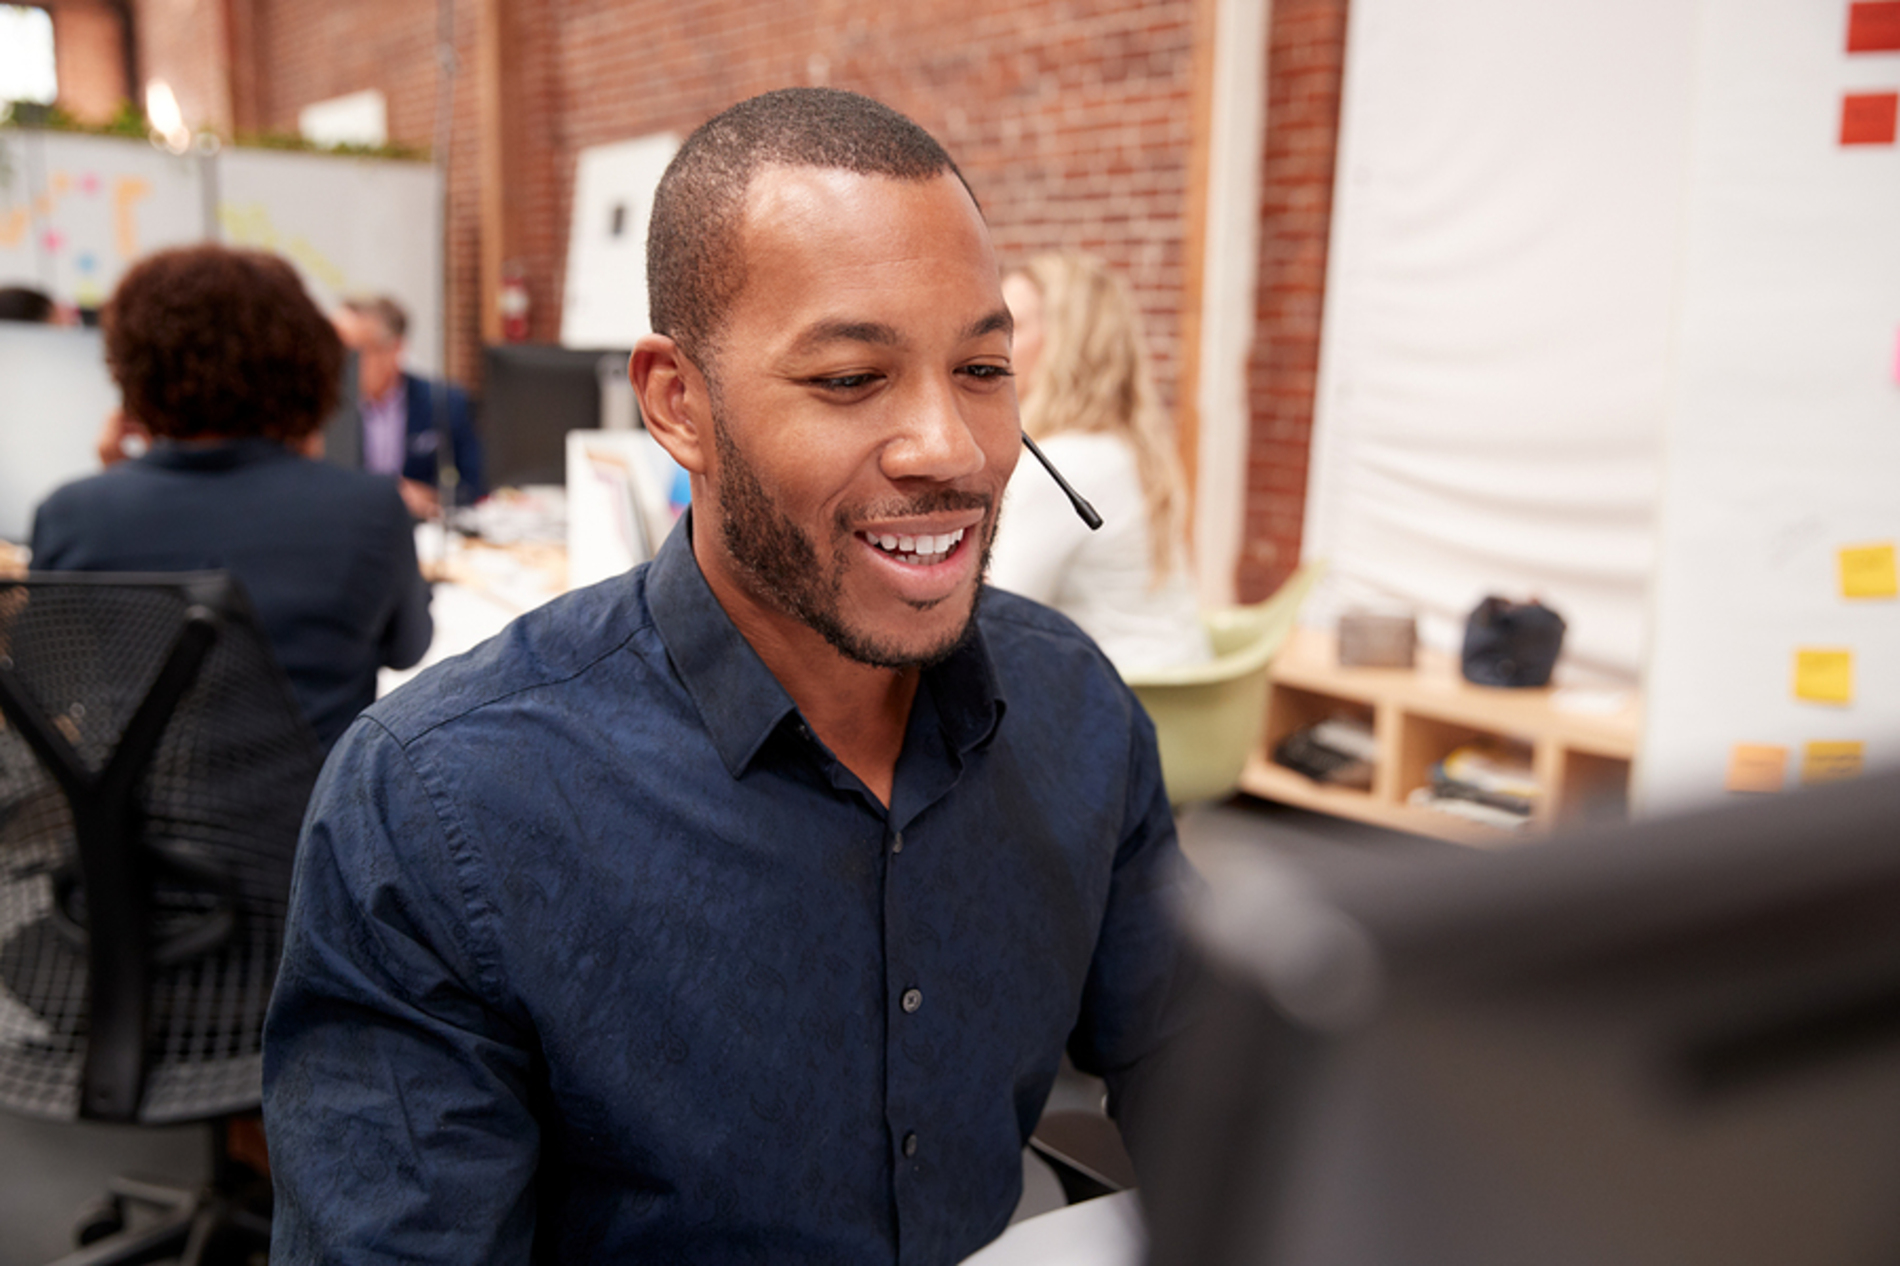 Smiling man in front of a desk top computer speaking into a headset.